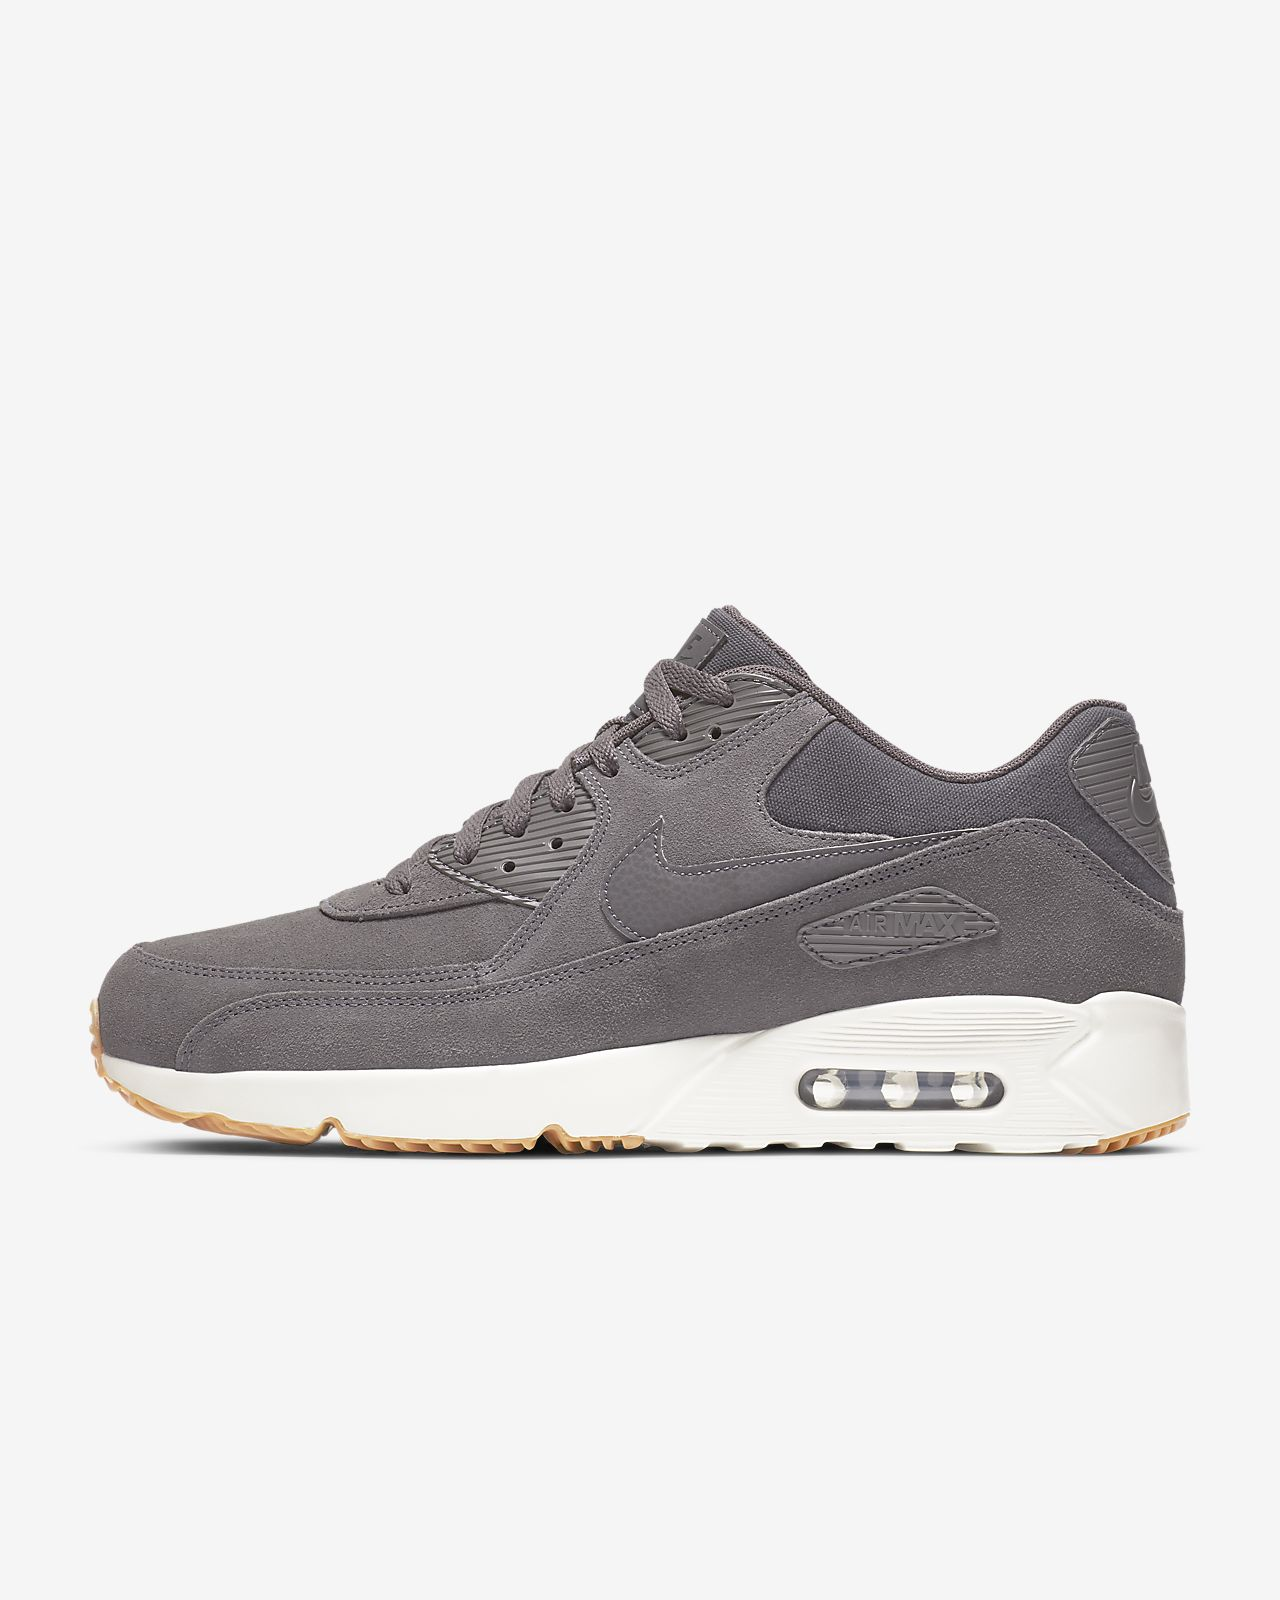 newest f2f89 c0a09 Men s Shoe. Nike Air Max 90 Ultra 2.0